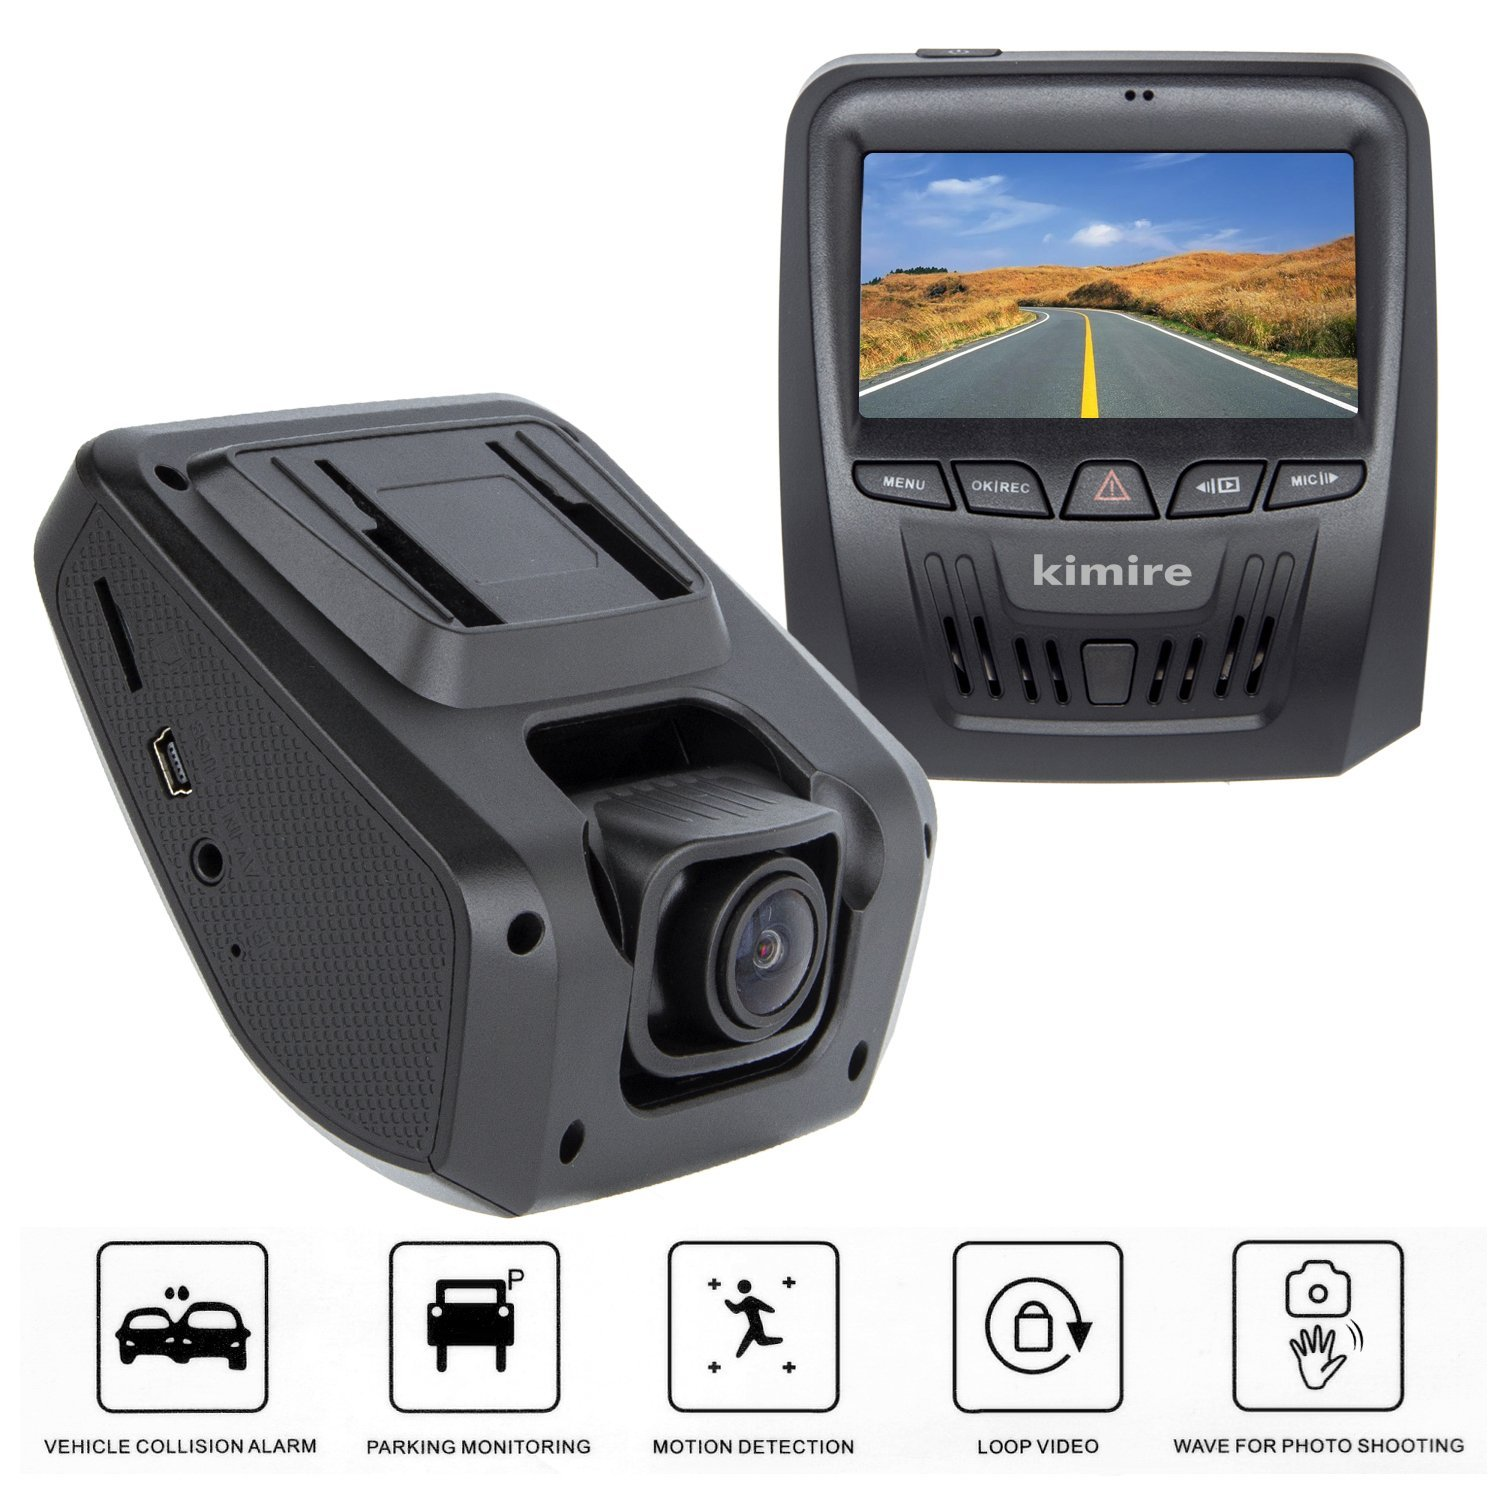 Car Dash Cam,Kimire Dashboard Onboard Camera Camcorder Driving Video Recorder Full HD 1080P,Starlight Night Vision,G-Sensor,150° Wide Angle,WDR,Motion Detection,Parking Monitor,Loop Recording